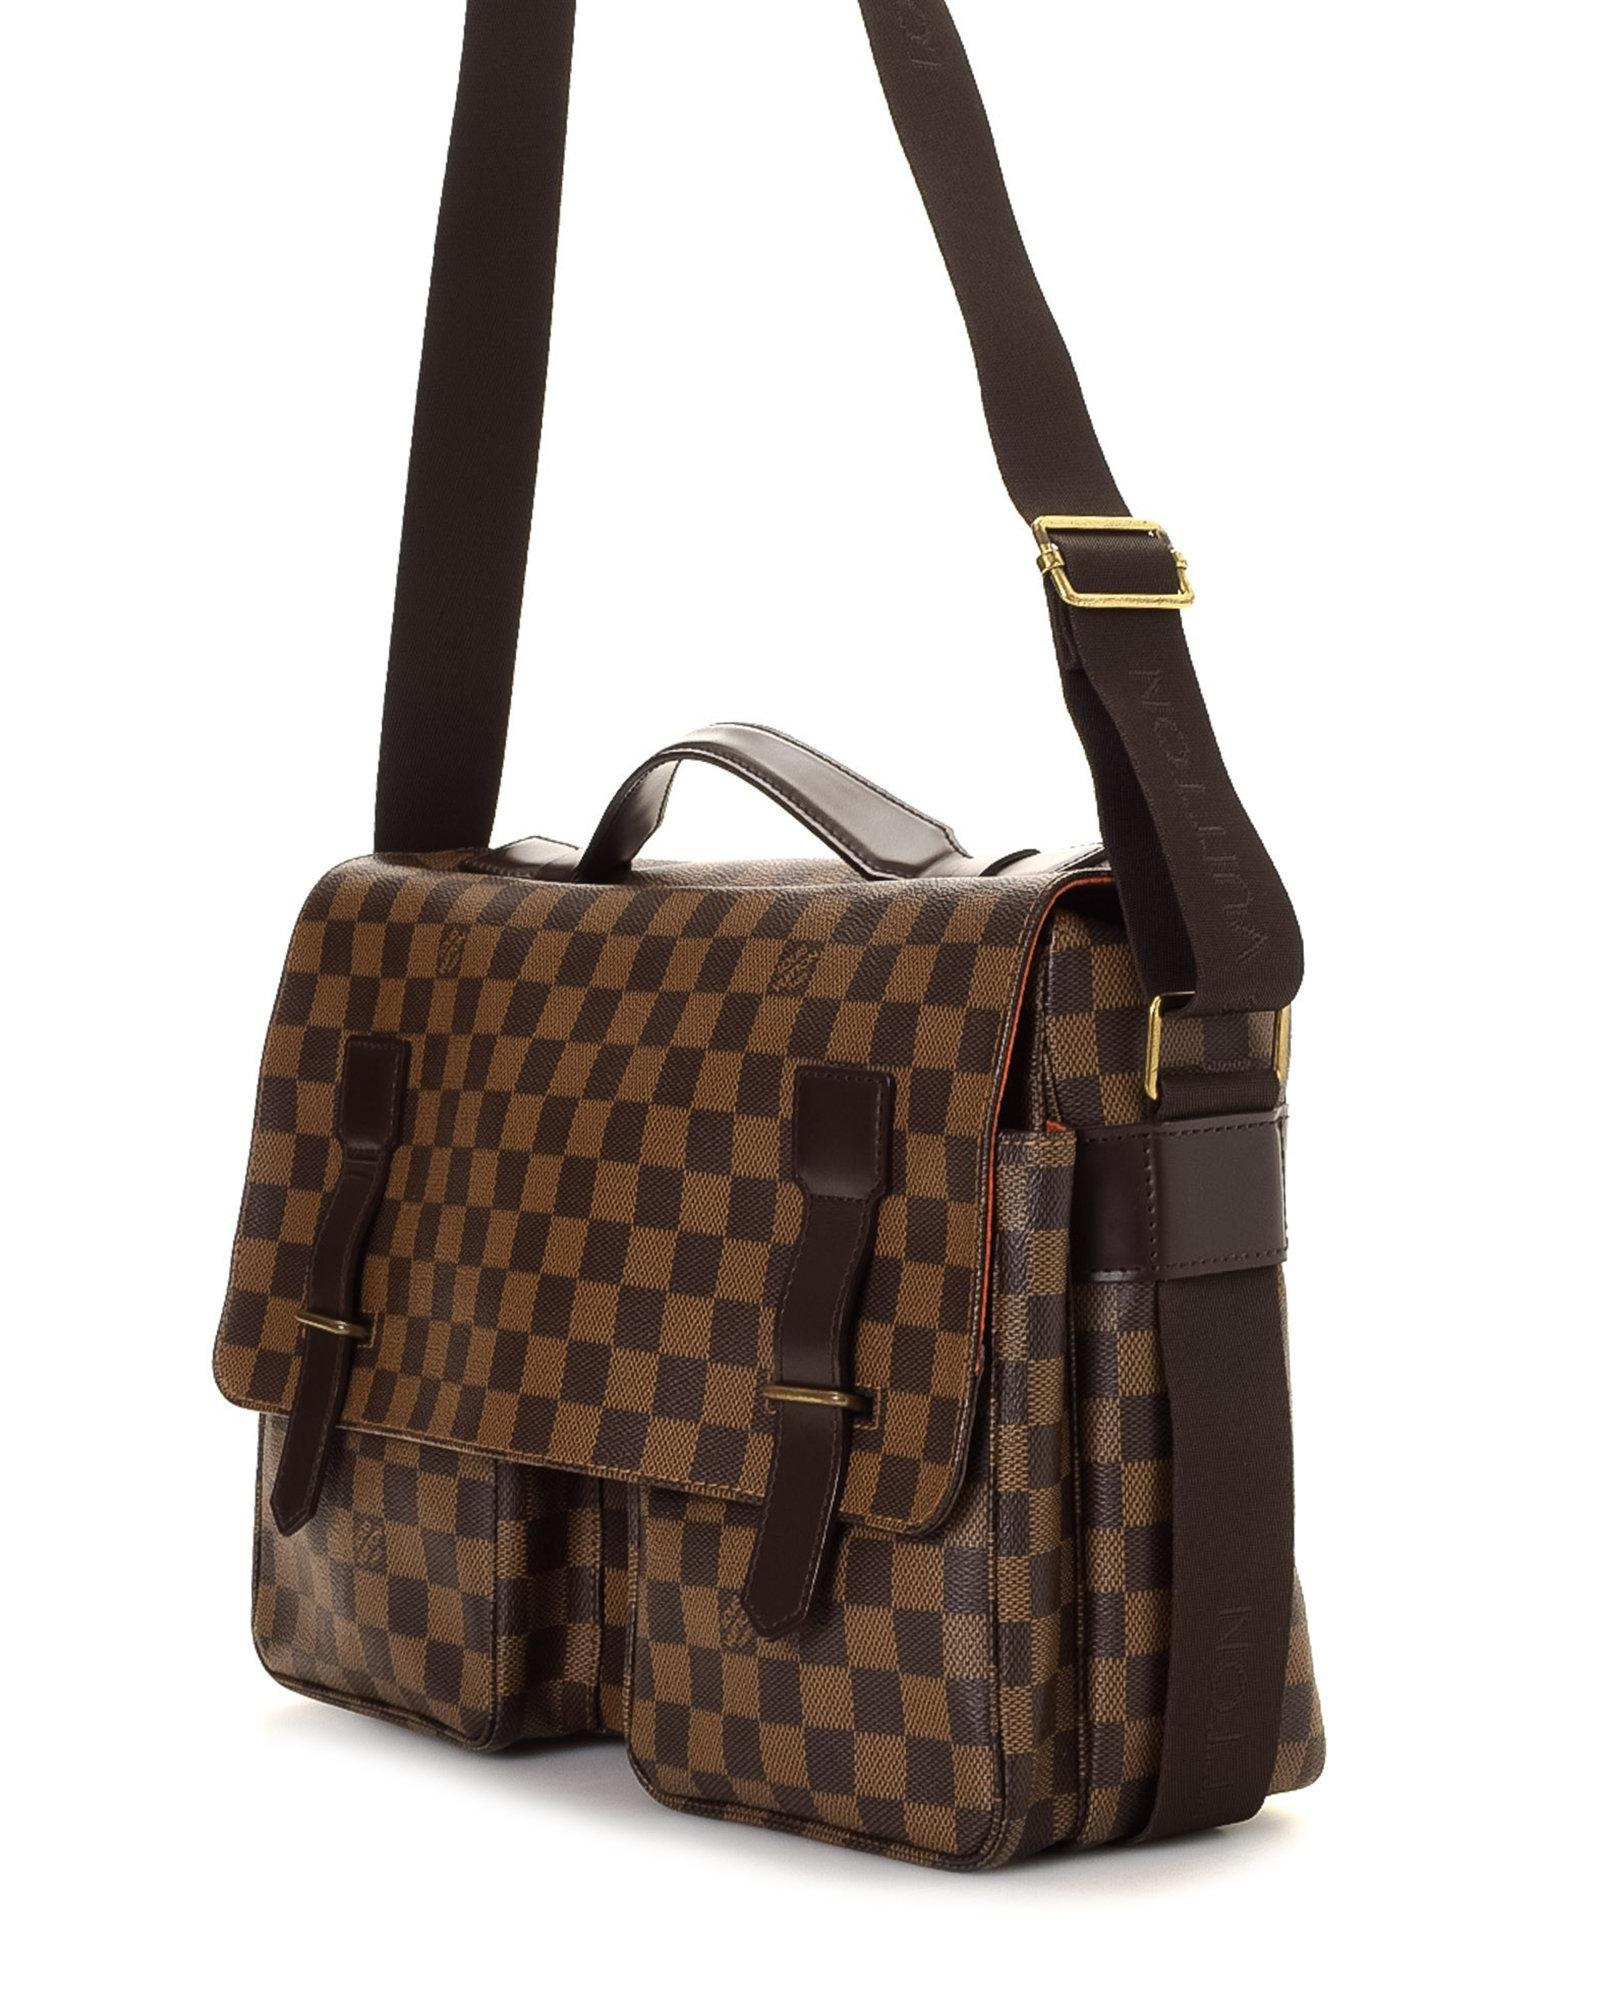 55545d5fb3ee Lyst - Louis Vuitton Damier Ebene Broadway Messenger Bag - Vintage ...